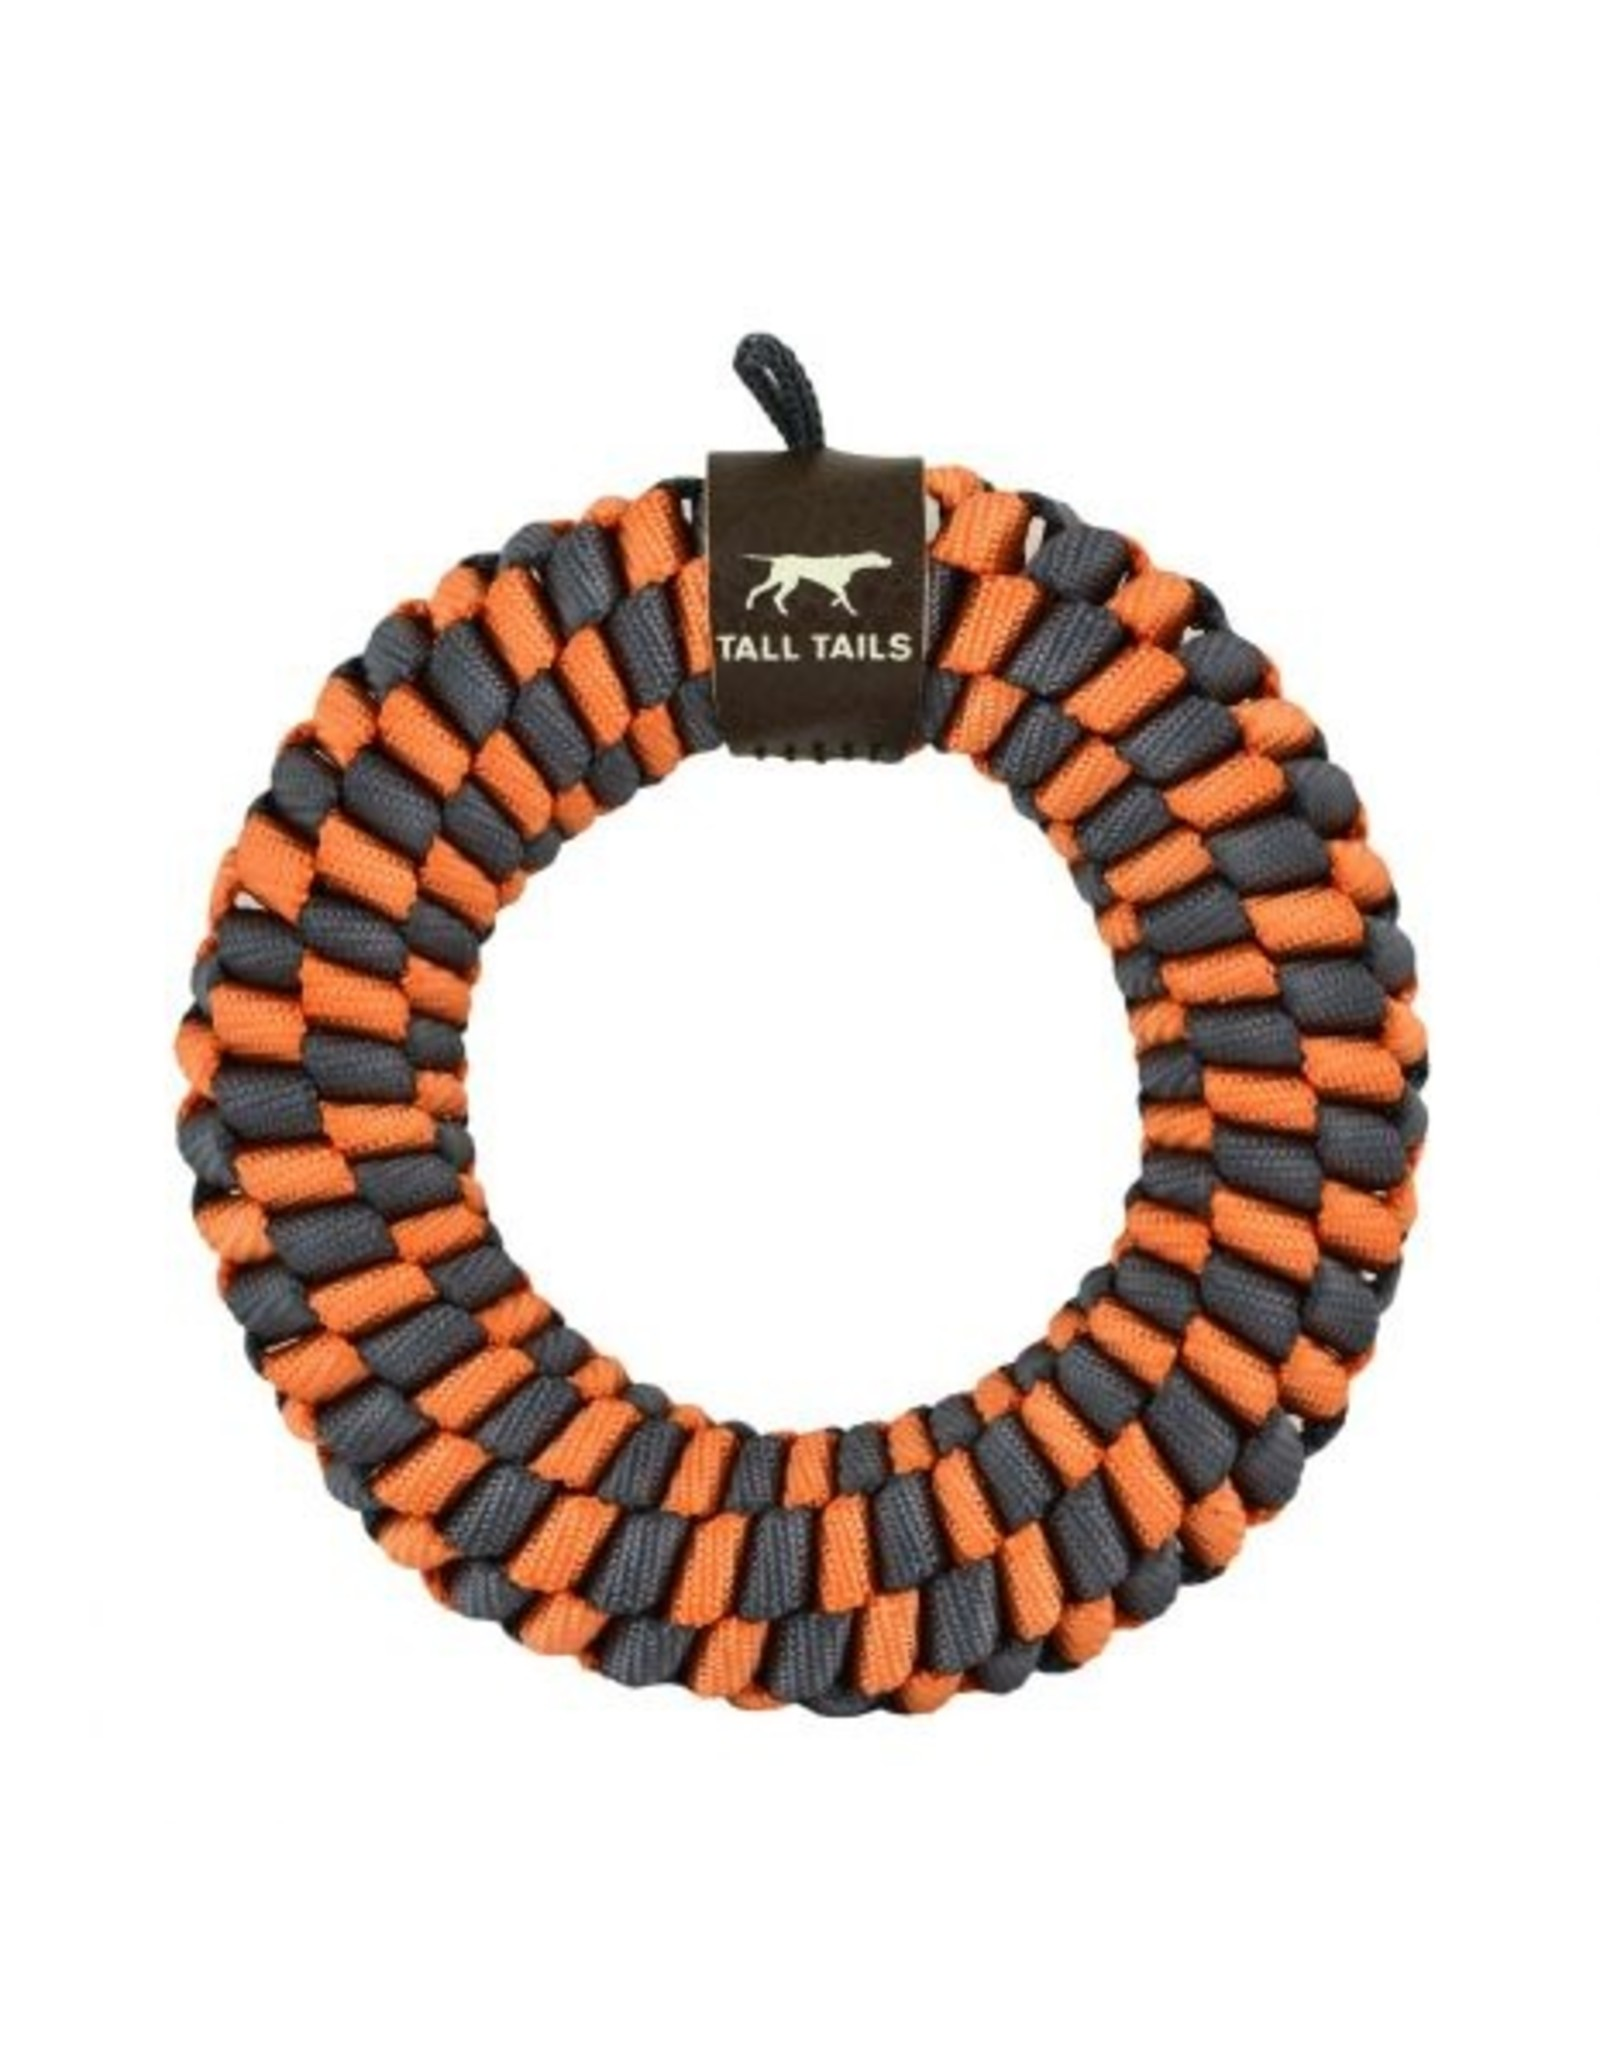 Tall Tails Tall Tails Braided Ring Dog Toy